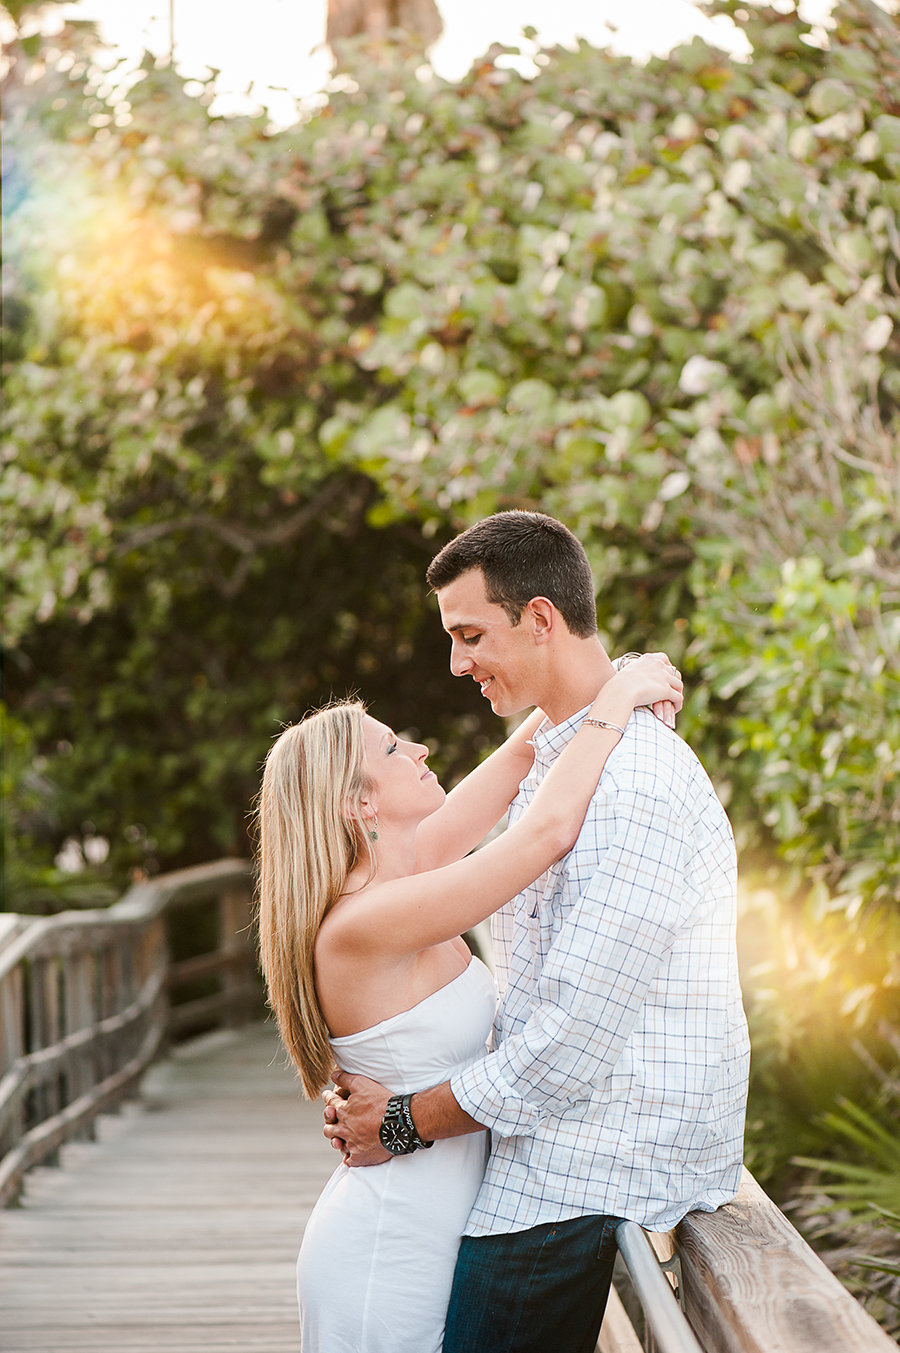 Palm Beach Engagement Photography by Palm Beach Photography, Inc.